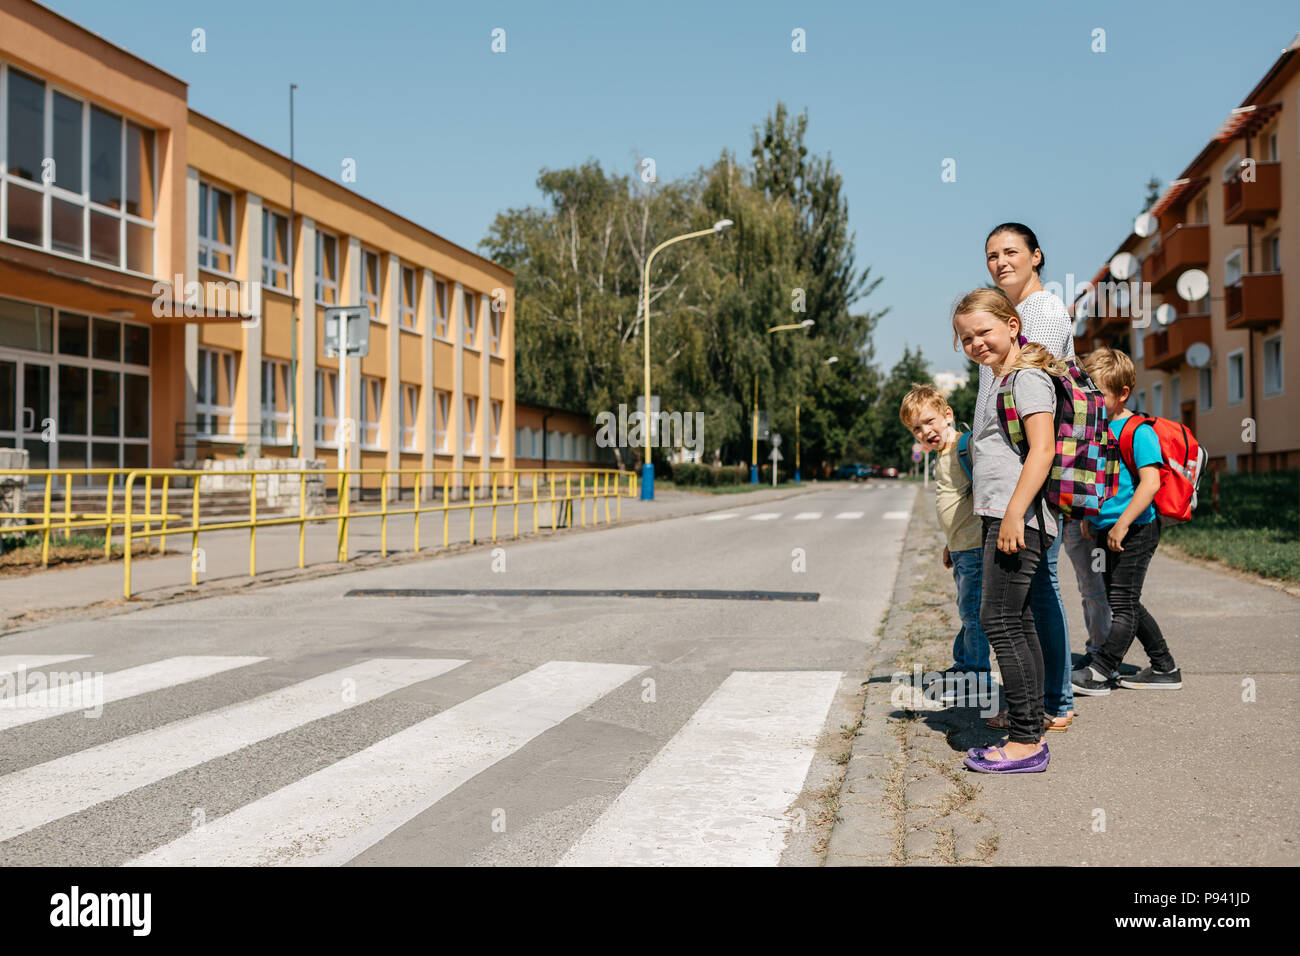 Mother walking to school with her children teaching them road safety. Children on their way to school waiting at a crosswalk. - Stock Image